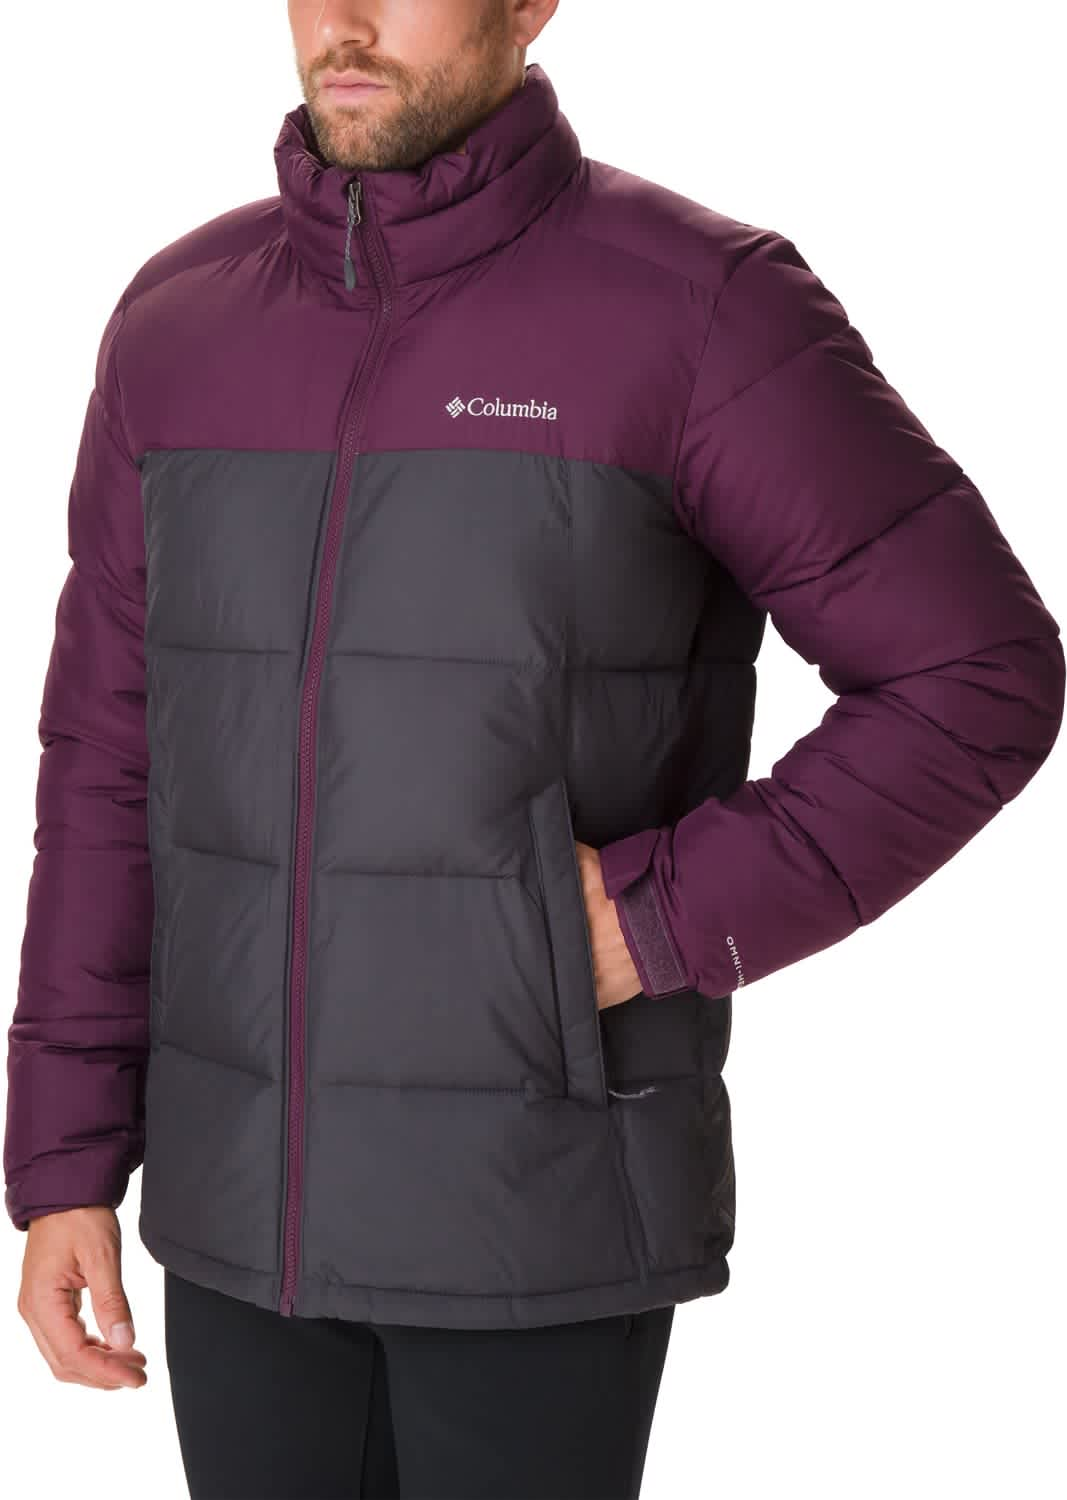 Columbia Men's Pike Lake Snowboard Jacket